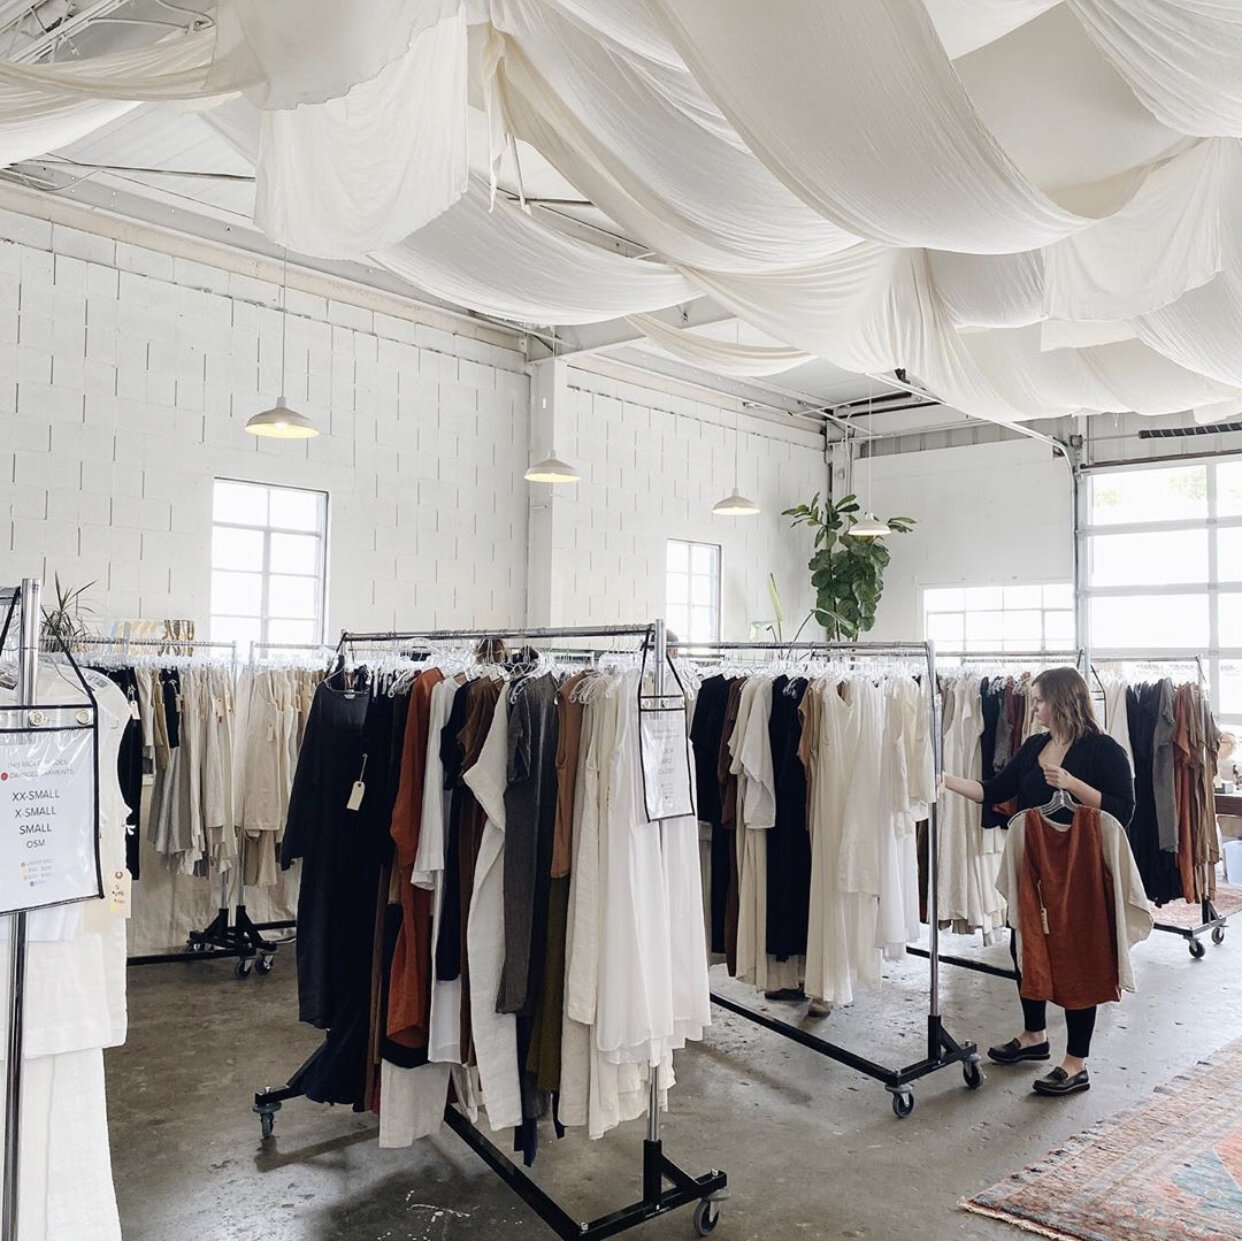 Live Shoot Location #2 - We'll be transforming this space in the Elizabeth Suzann warehouse (but leaving those ceiling drapes because duh!) and utilizing the light from those giant windows and garage door. We'll create an elegant, high-fashion + wedding inspired shoot for you to test your skills and enhance your portfolio. Don't forget, the images are yours to keep and use them however you'd like! If you took the shots and edited yourself, feel free to submit them anywhere!